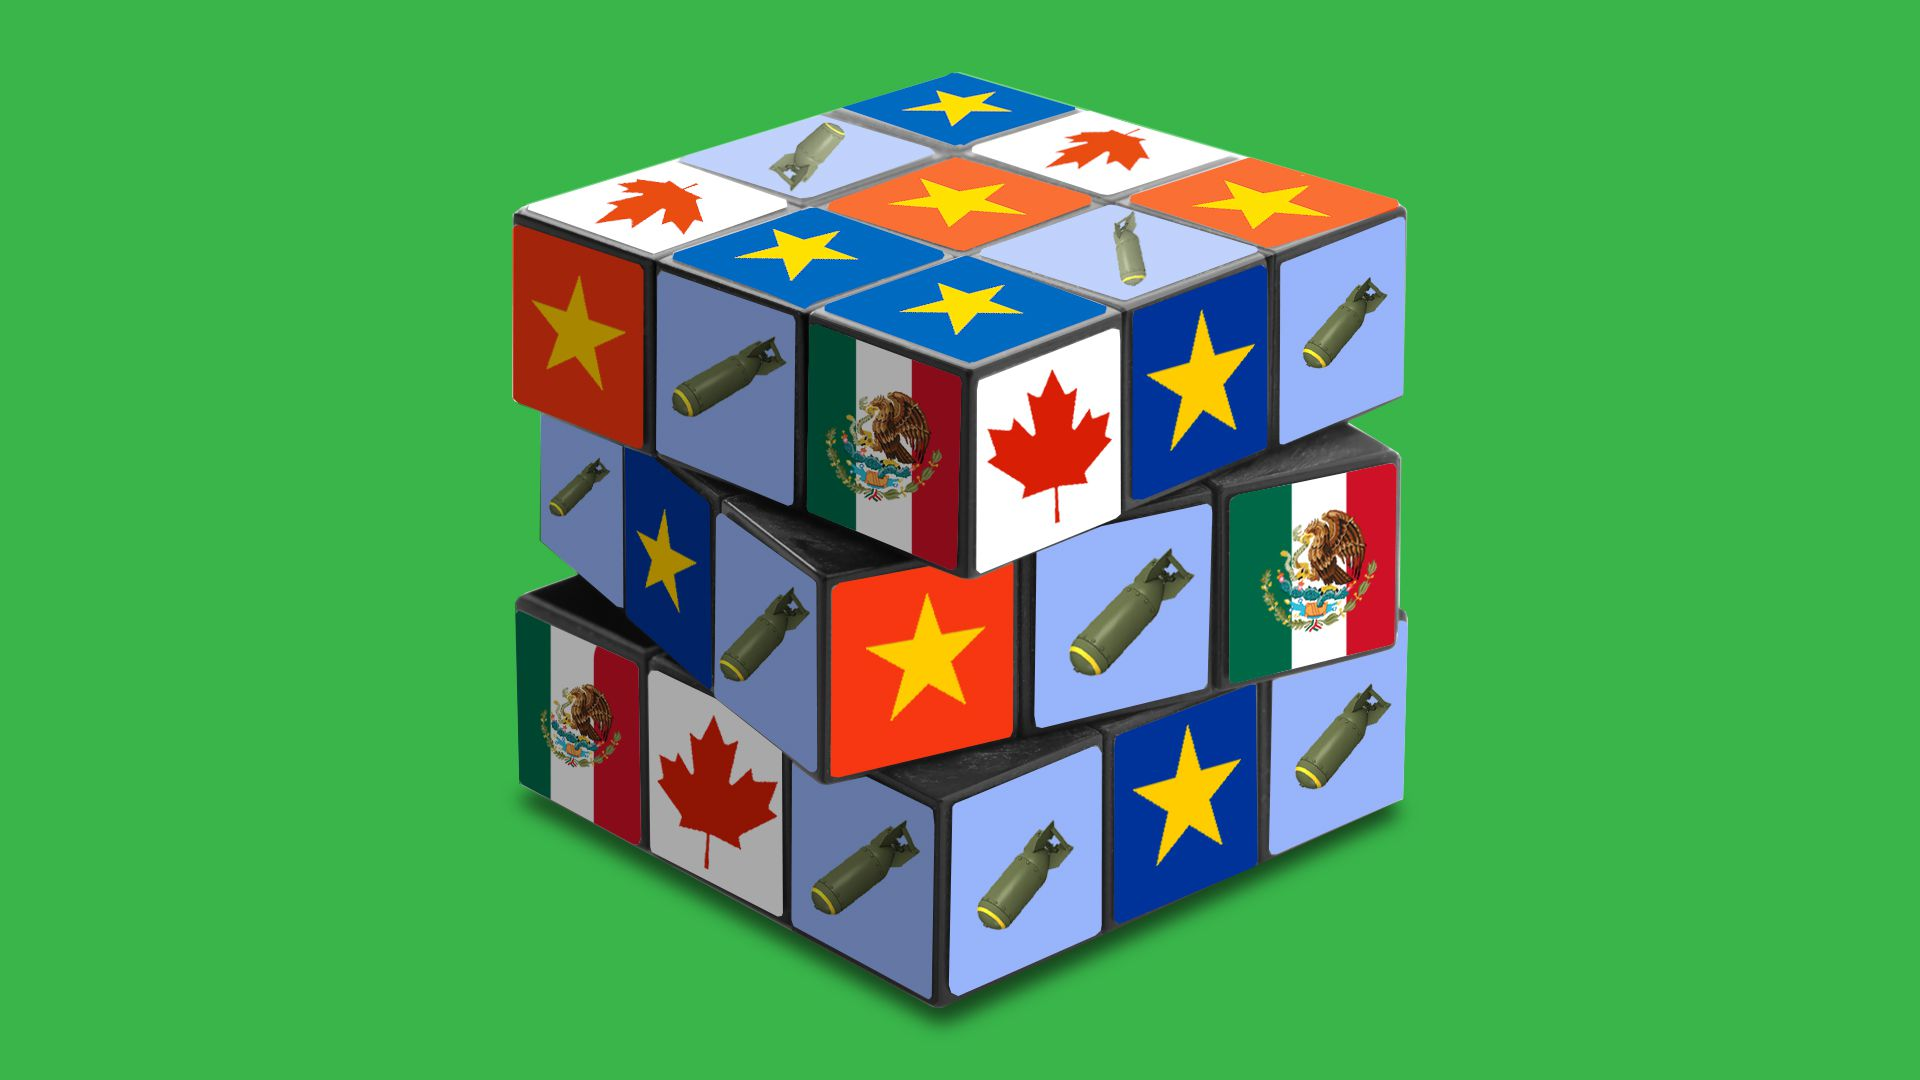 Illustration of a Rubik's Cube with icons representing the U.S., Mexico, Canada, and China, plus images of bombs